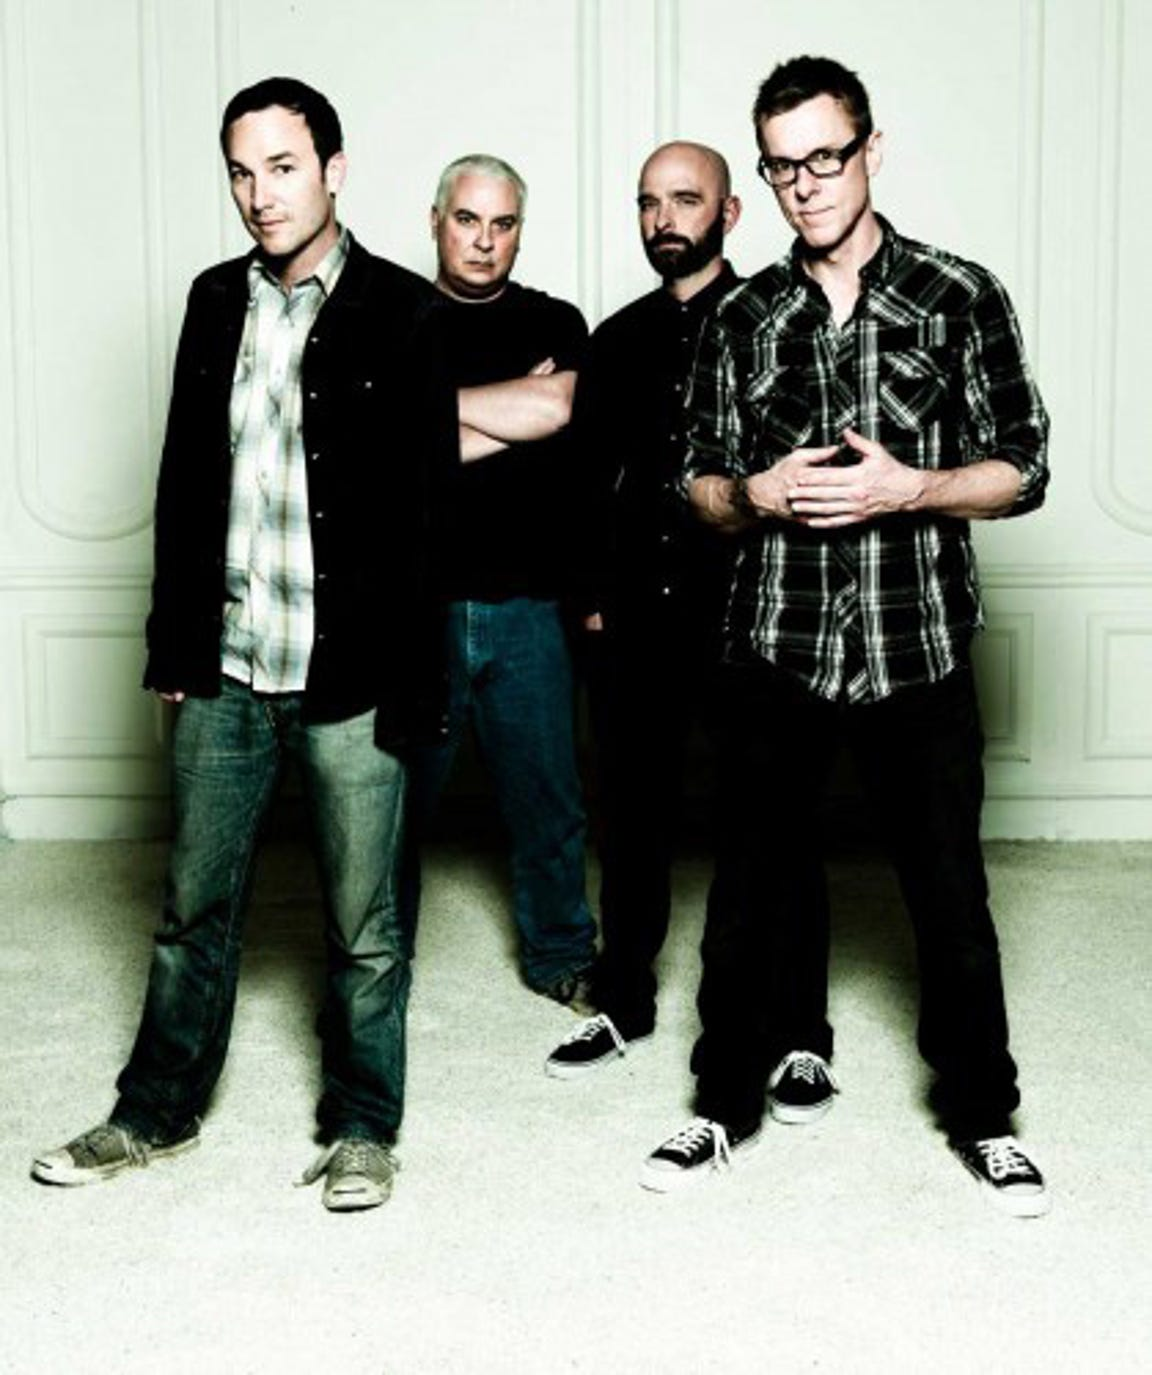 The Toadies perform Friday at Brewster Street Ice House.